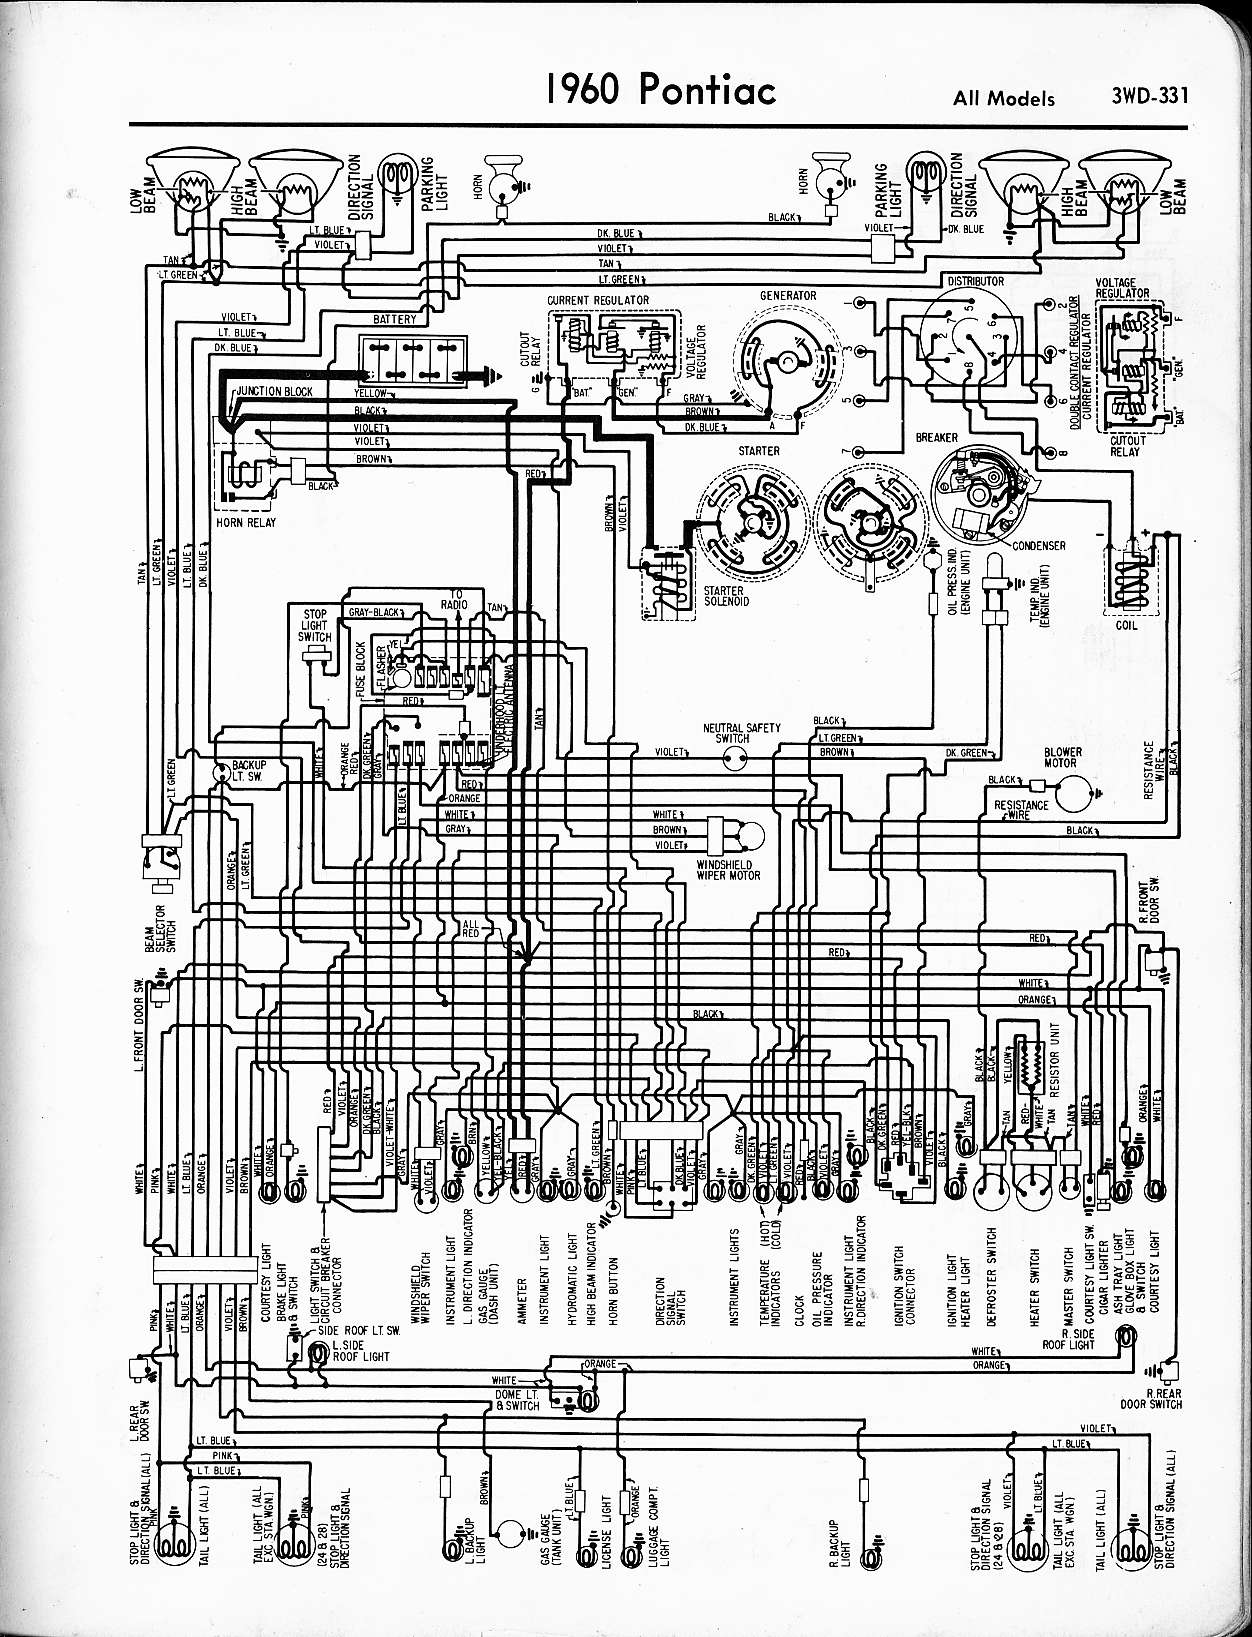 1966 pontiac wiring diagram schematics wiring diagrams rh wine174 com